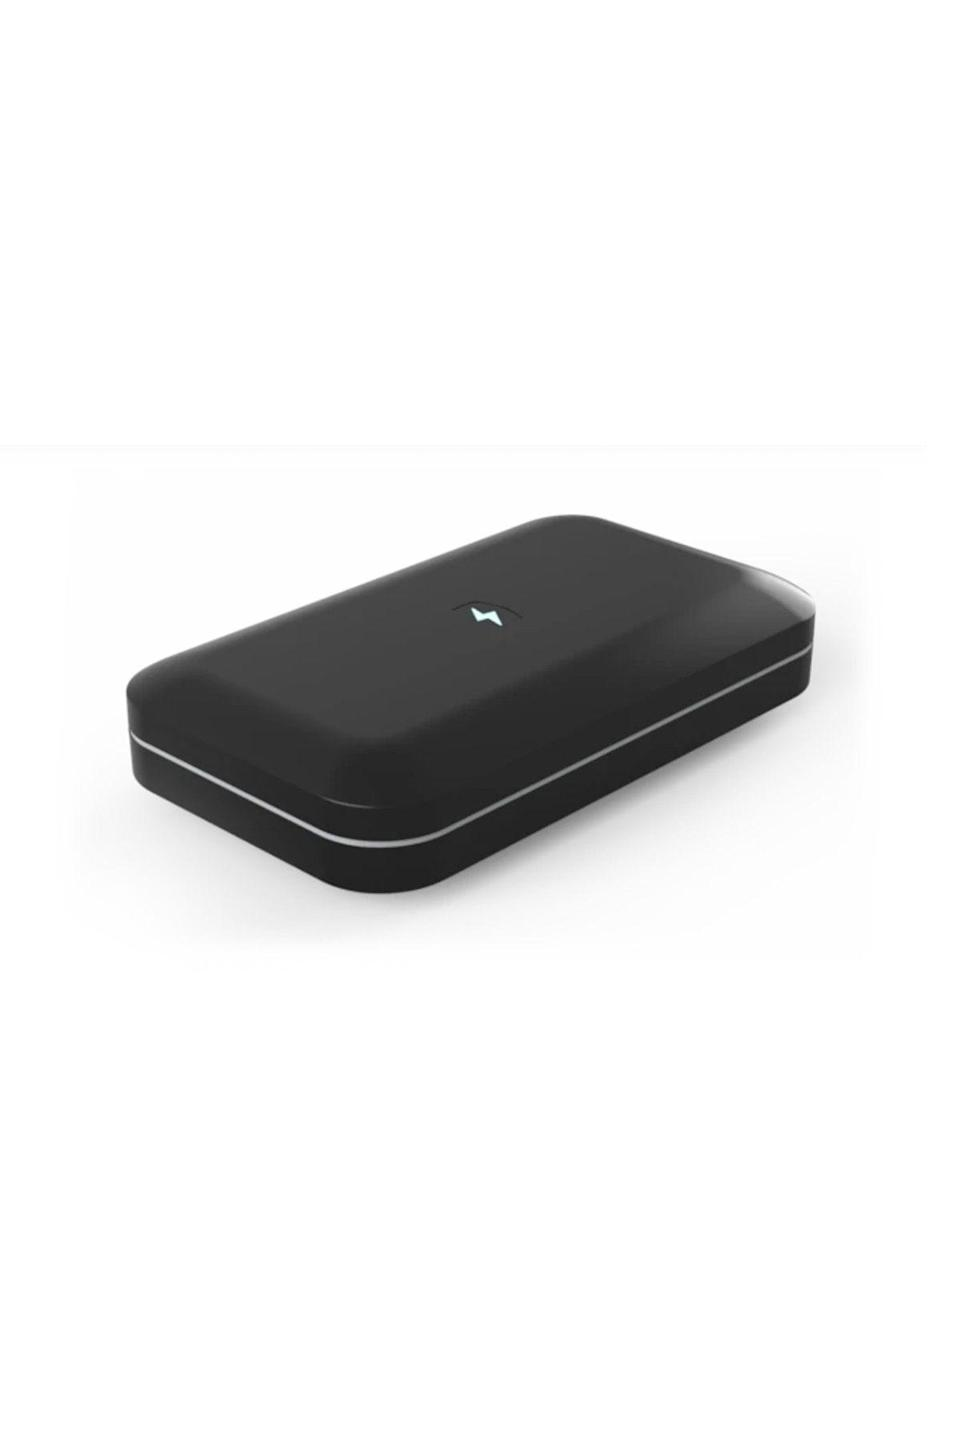 """<p><strong>PhoneSoap</strong></p><p>phonesoap.com</p><p><strong>$79.95</strong></p><p><a href=""""https://go.redirectingat.com?id=74968X1596630&url=https%3A%2F%2Fwww.phonesoap.com%2Fproducts%2Fphonesoap-3-phone-uv-sanitizer&sref=https%3A%2F%2Fwww.cosmopolitan.com%2Fstyle-beauty%2Ffashion%2Fg27349308%2Fnew-dad-gift-ideas%2F"""" rel=""""nofollow noopener"""" target=""""_blank"""" data-ylk=""""slk:Shop Now"""" class=""""link rapid-noclick-resp"""">Shop Now</a></p><p>Help him avoid a sick day (new baby = <a href=""""https://www.vox.com/2016/8/31/12714028/why-parents-kids-get-sick-viruses"""" rel=""""nofollow noopener"""" target=""""_blank"""" data-ylk=""""slk:more germs"""" class=""""link rapid-noclick-resp"""">more germs</a>) with a sanitizing device for his phone. The UV light kills almost all bacteria and it also doubles as a charger. </p>"""